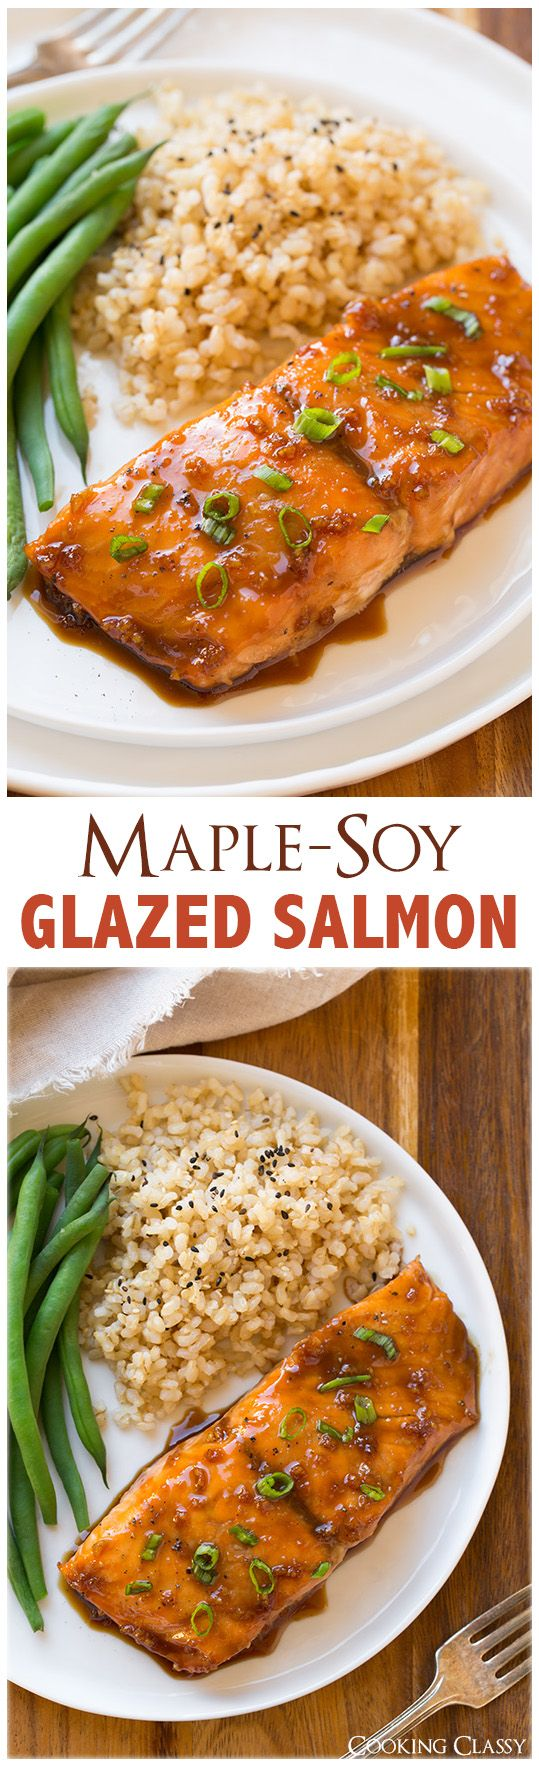 Maple-Soy Glazed Salmon - Only FOUR ingredients and it tastes seriously DELICIOUS!!